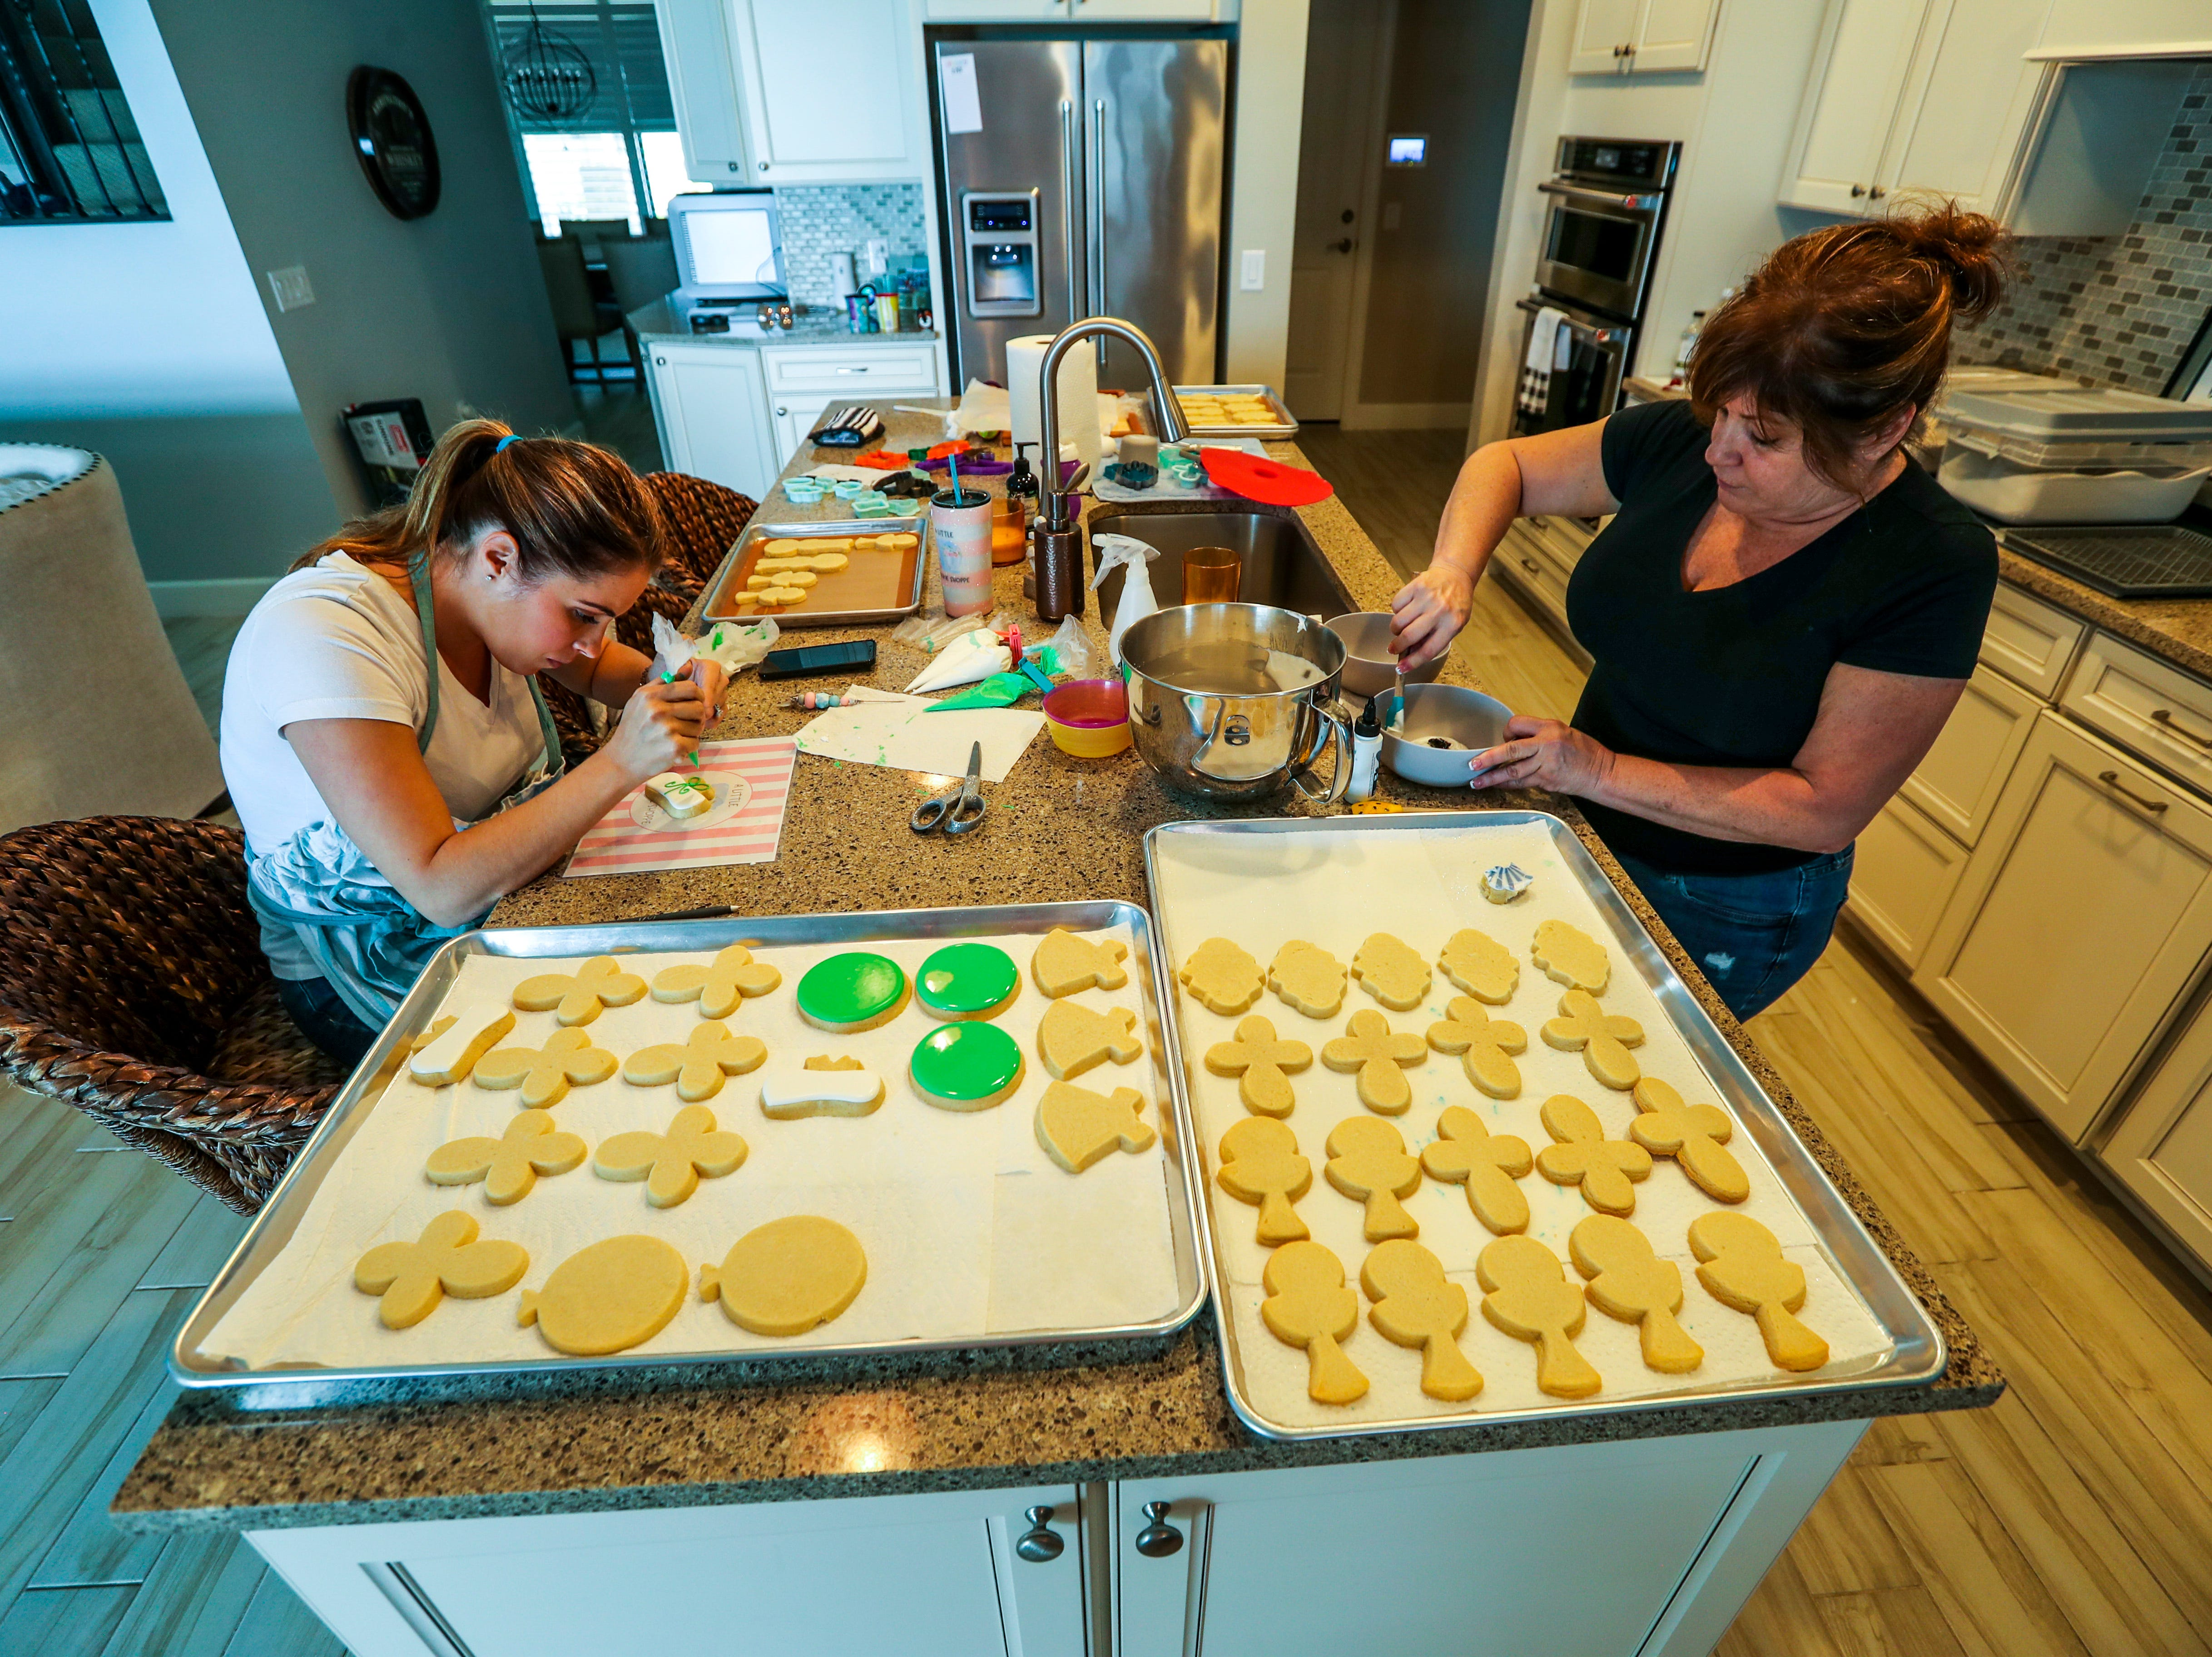 """Amanda Arrington operates """"A Little Cookie Shoppe"""" from her home near the village of Estero.  She bakes and decorates unique, custom cookies for different occasions. She's also a mom with six kids. April 30, 2019. She gets help from her mother during the busy weeks. Her mom helps with the cookies and the kids. But Amanda still does all of the decorating."""